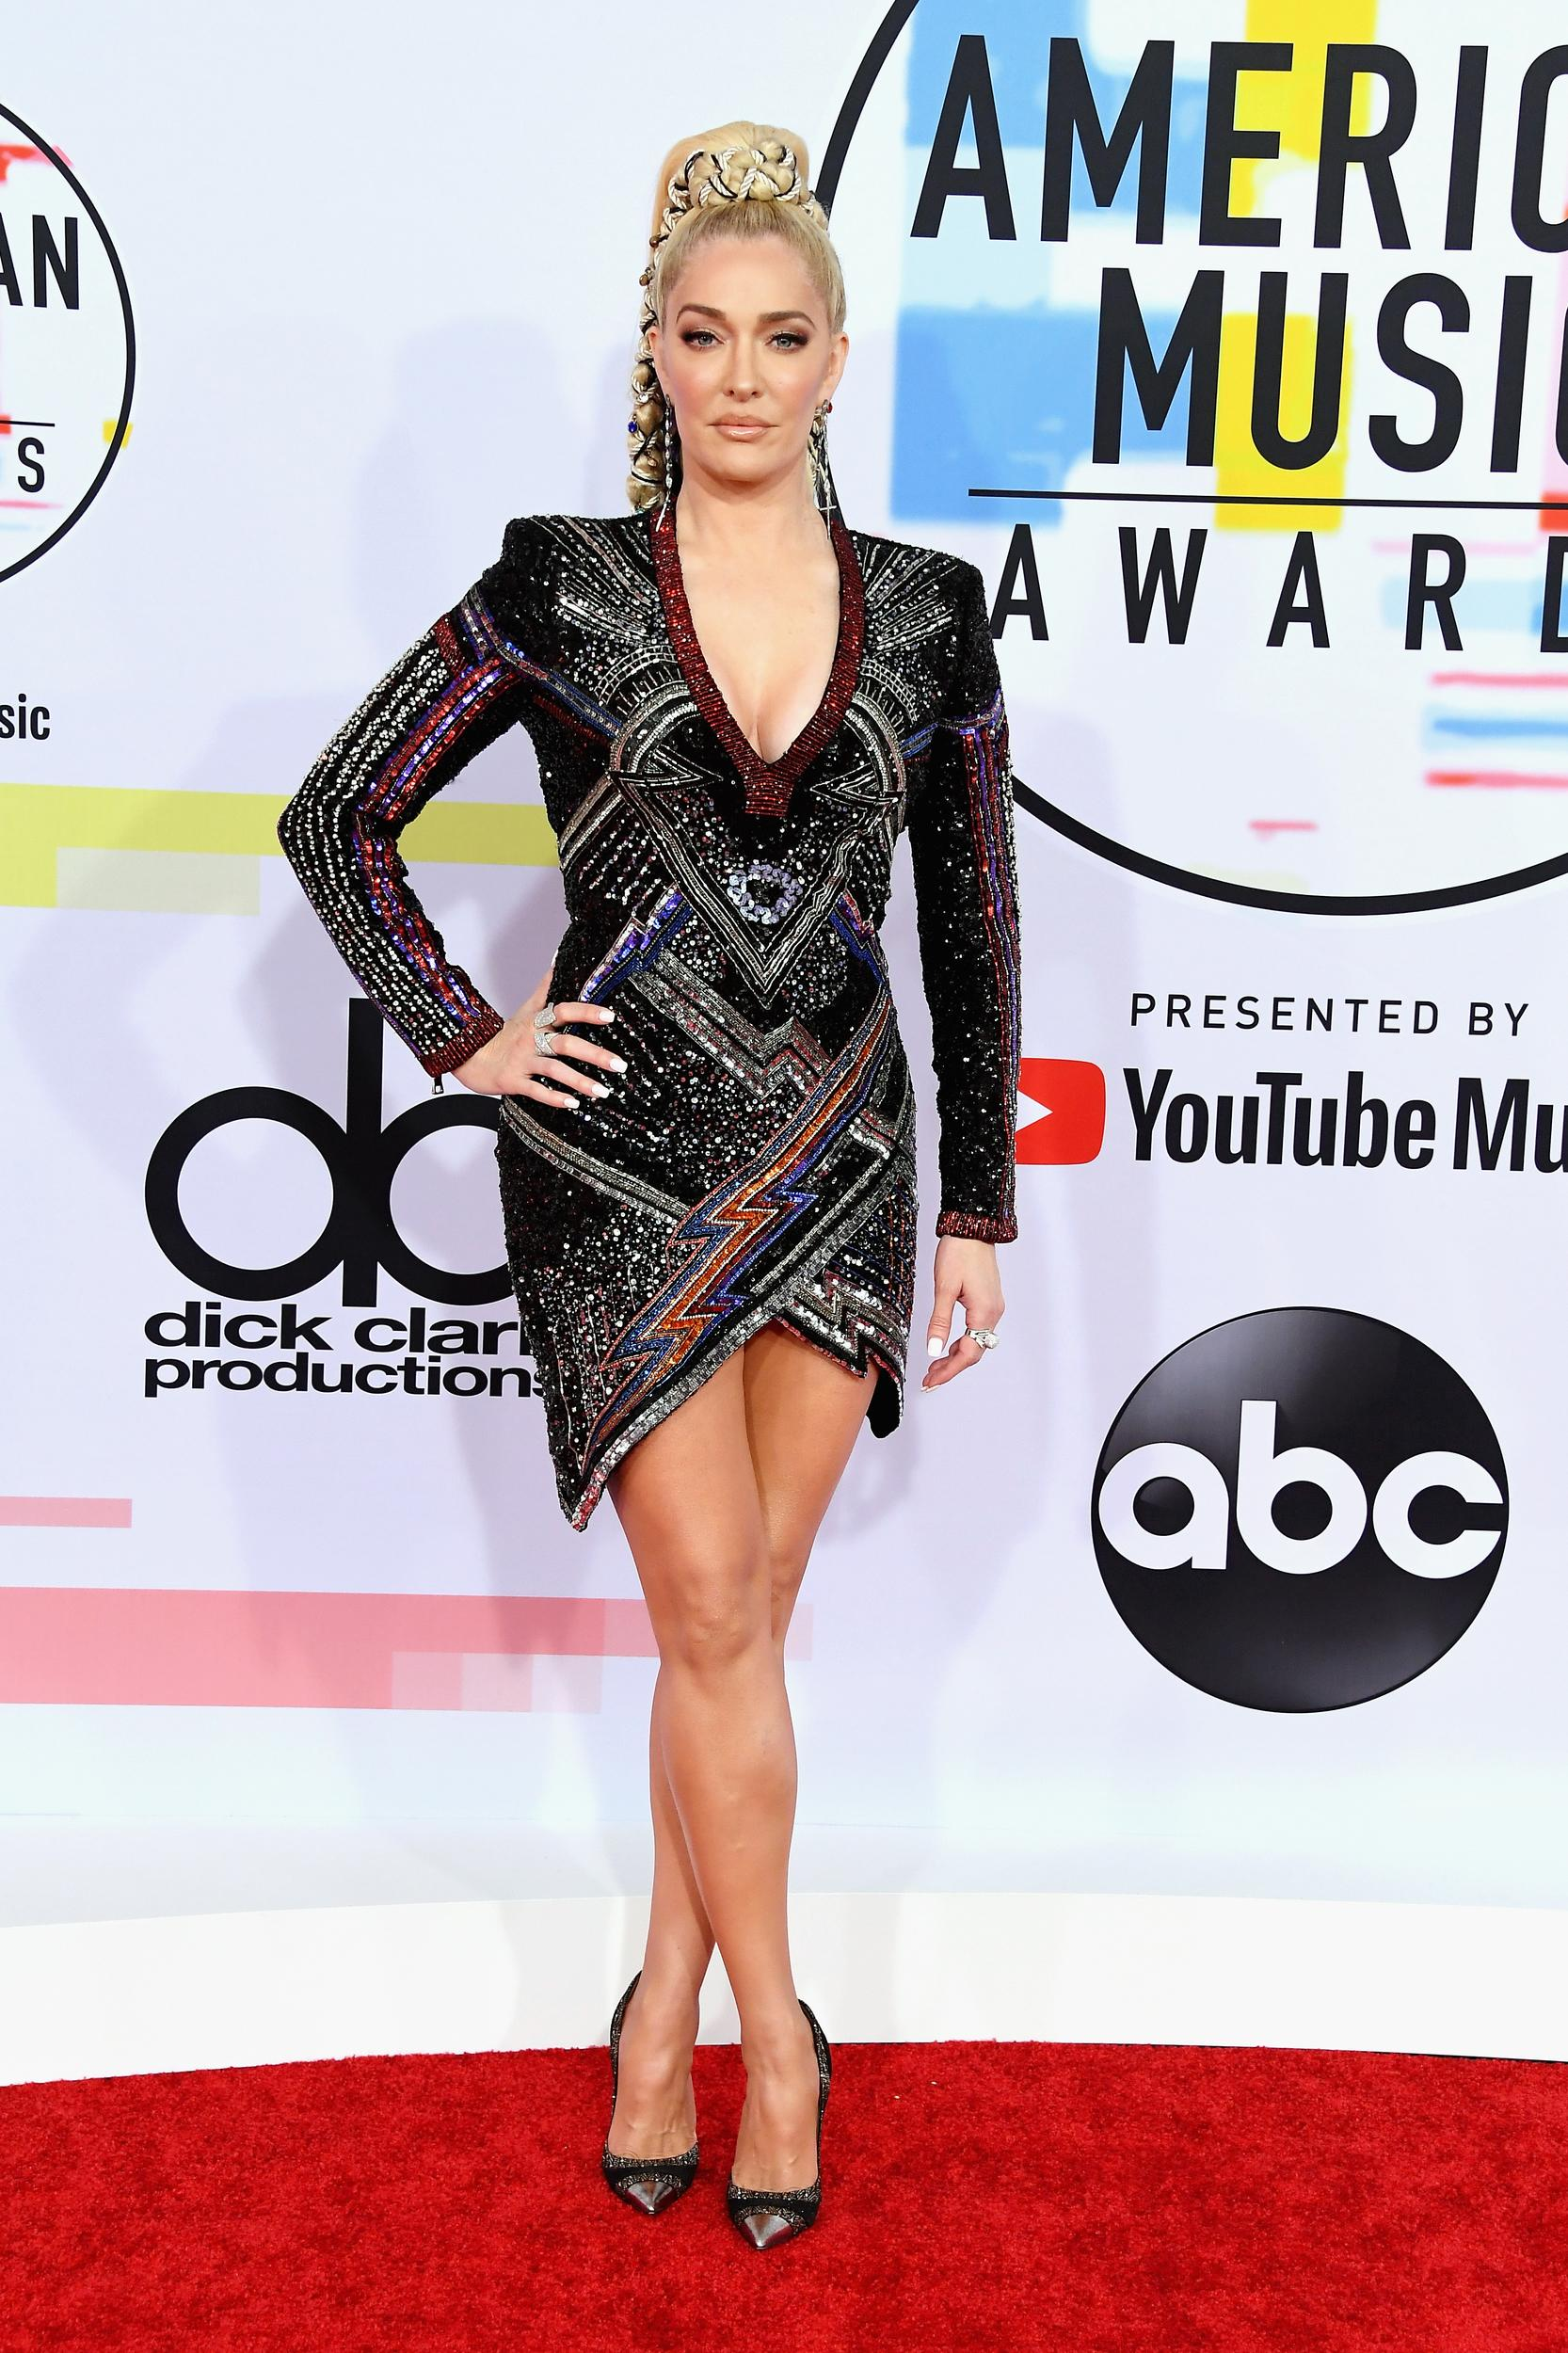 LOS ANGELES, CA - OCTOBER 09: Erika Jayne attends the 2018 American Music Awards at Microsoft Theater on October 9, 2018 in Los Angeles, California. (Photo by Steve Granitz/WireImage)